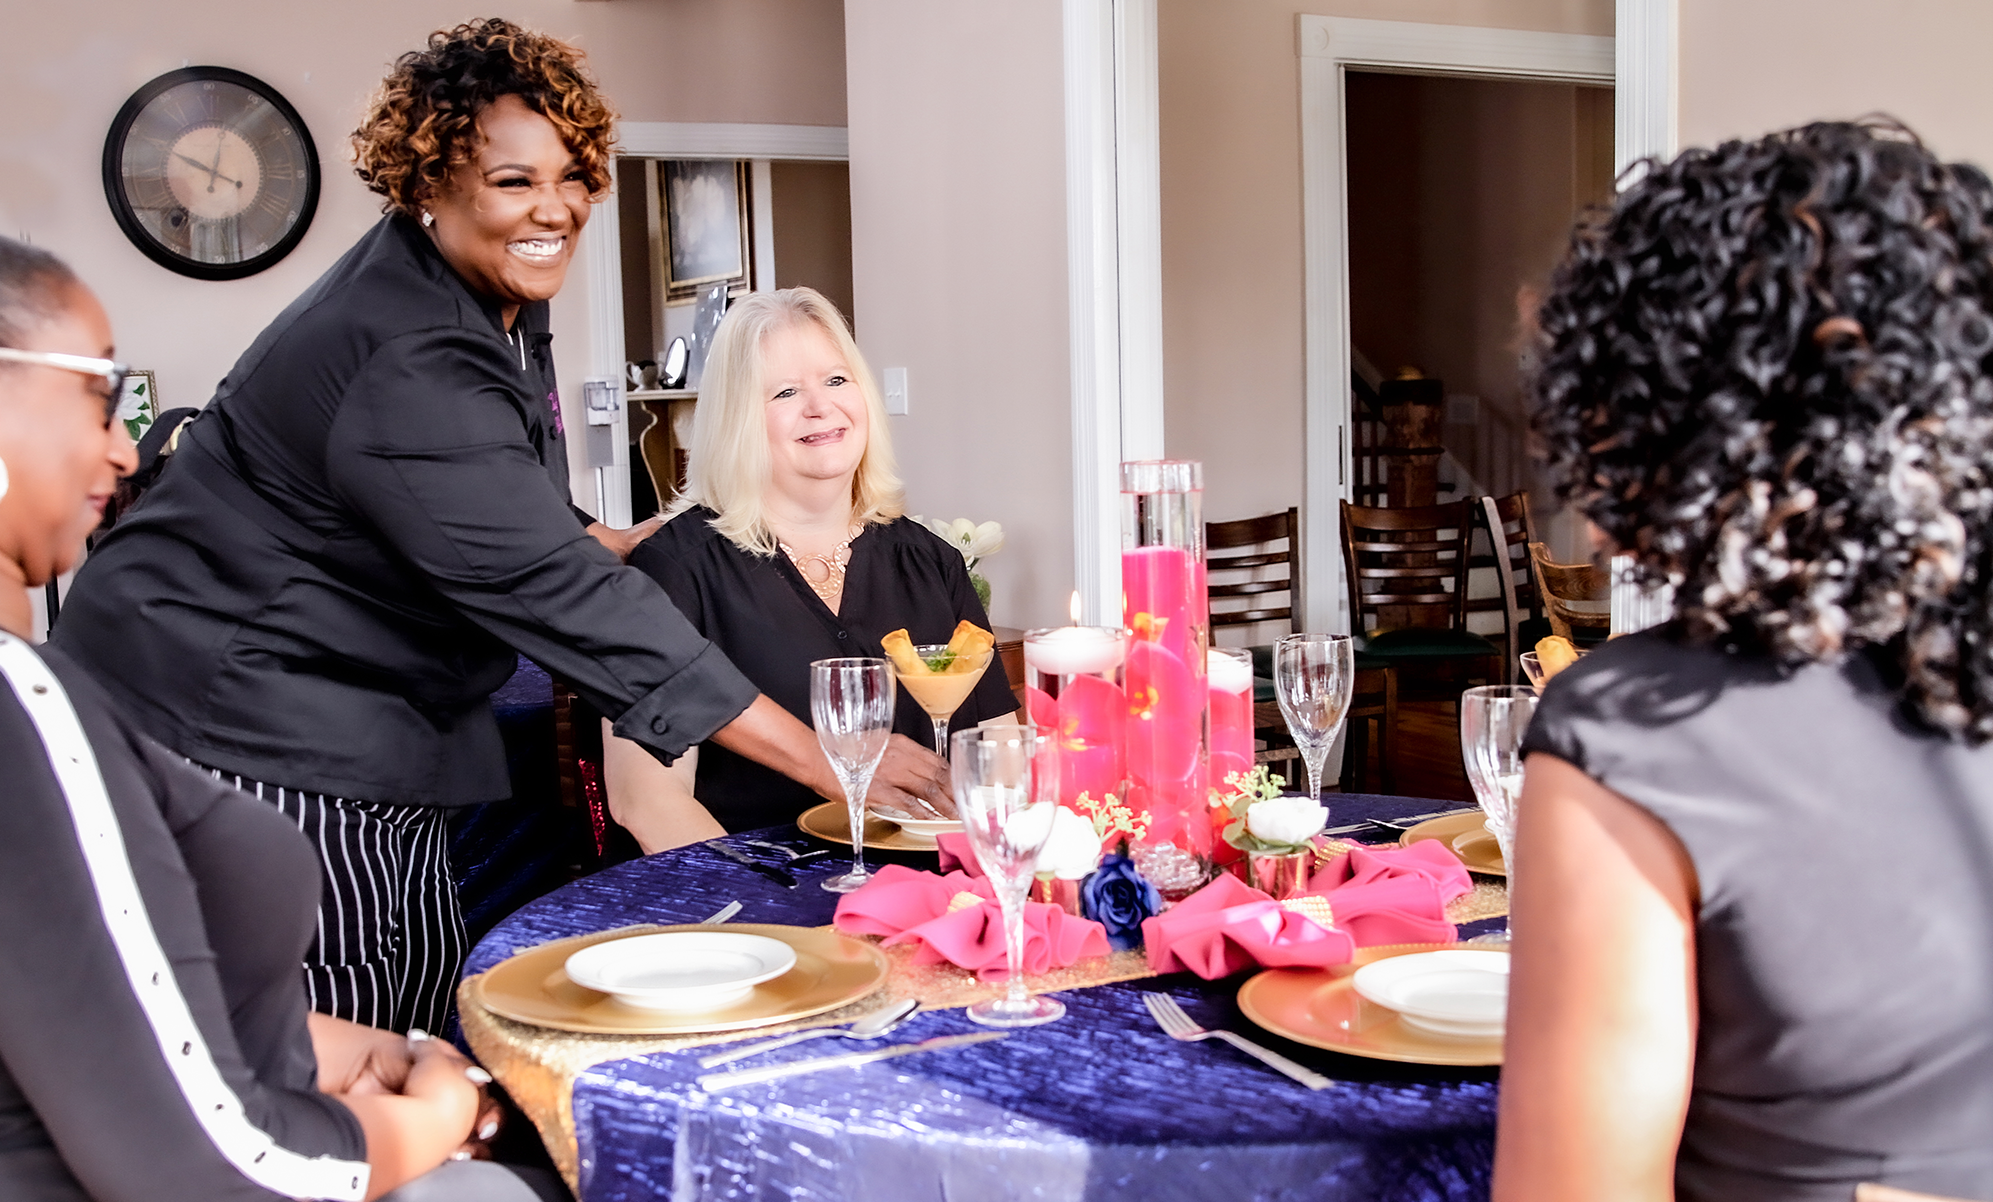 Chef Nikki smiling while pacing food on a plate at a table with a mixed race group of women smiling and patiently waiting